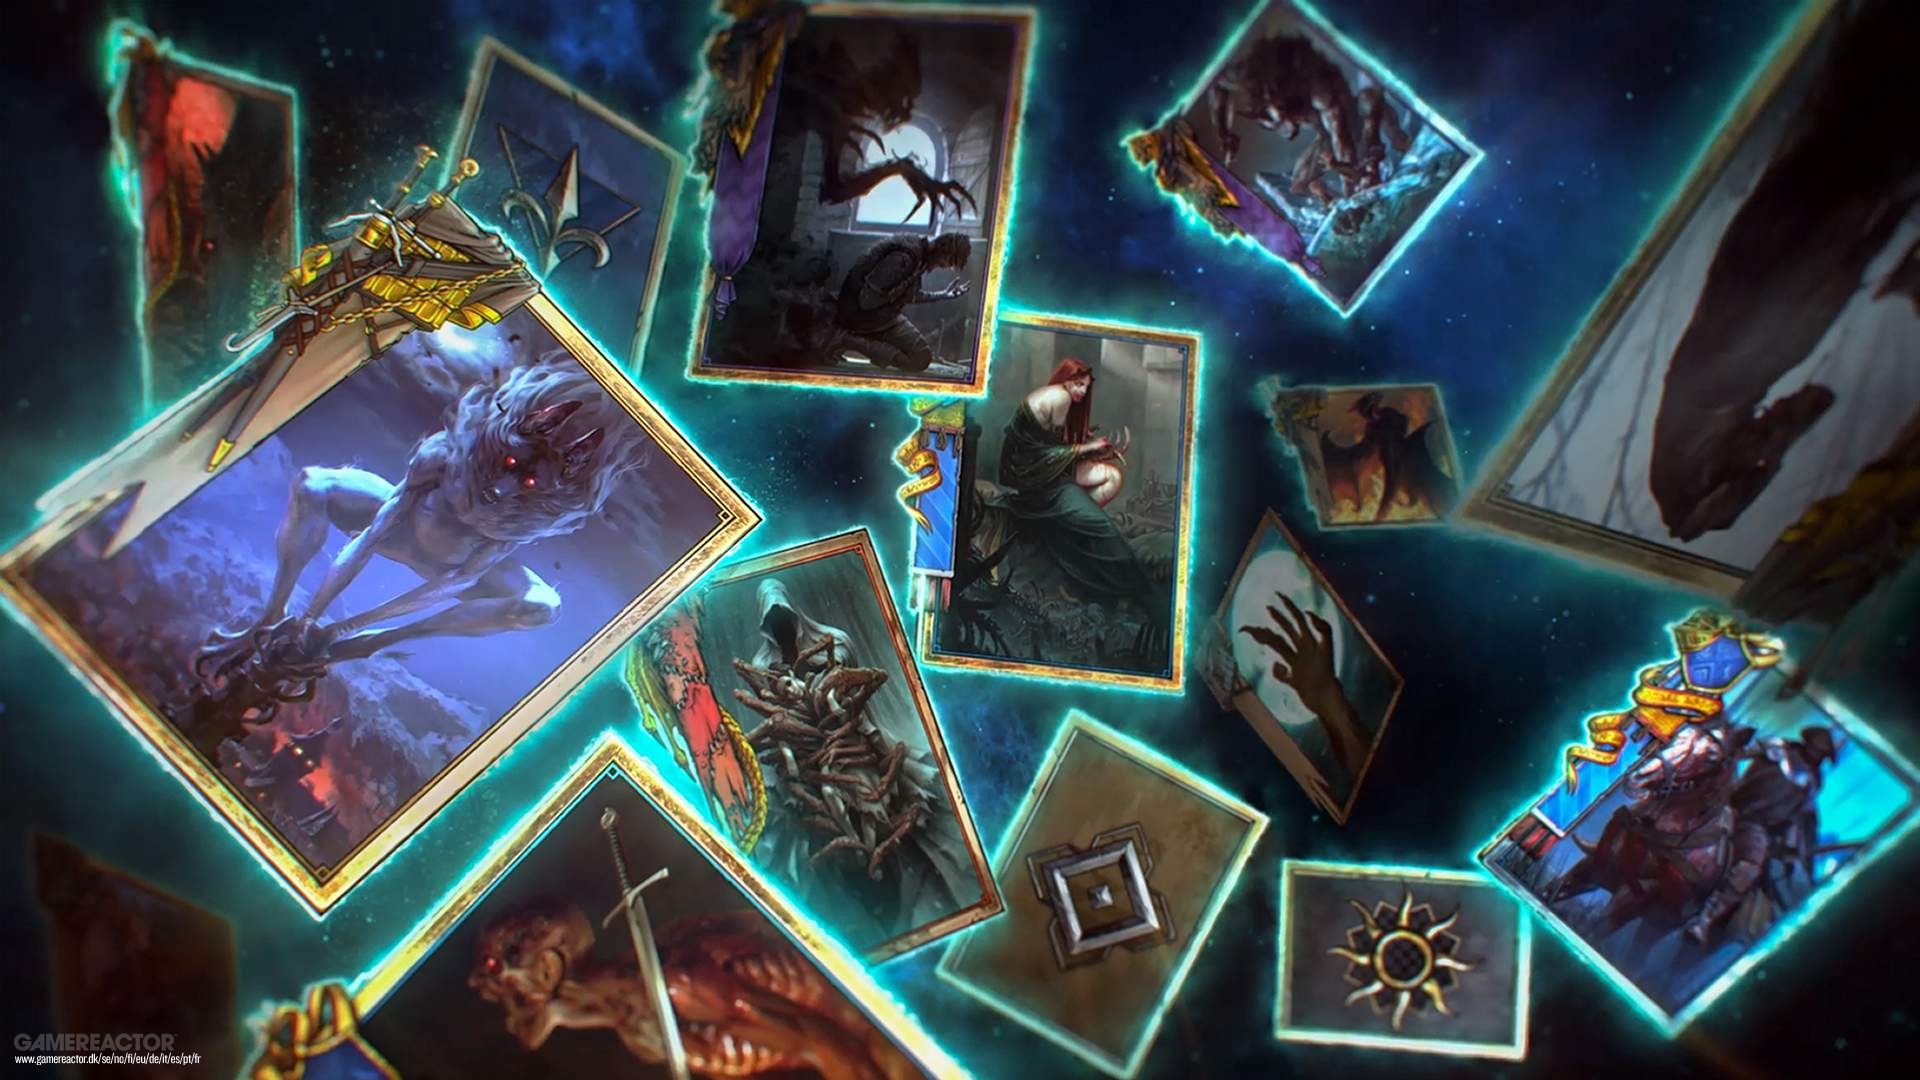 Thend New Arena Mode For Cd Projekt Reds Collectible Card Game Gwent Based On The Universe Of The Witcher Is Now Live In The Game And Whats More Is